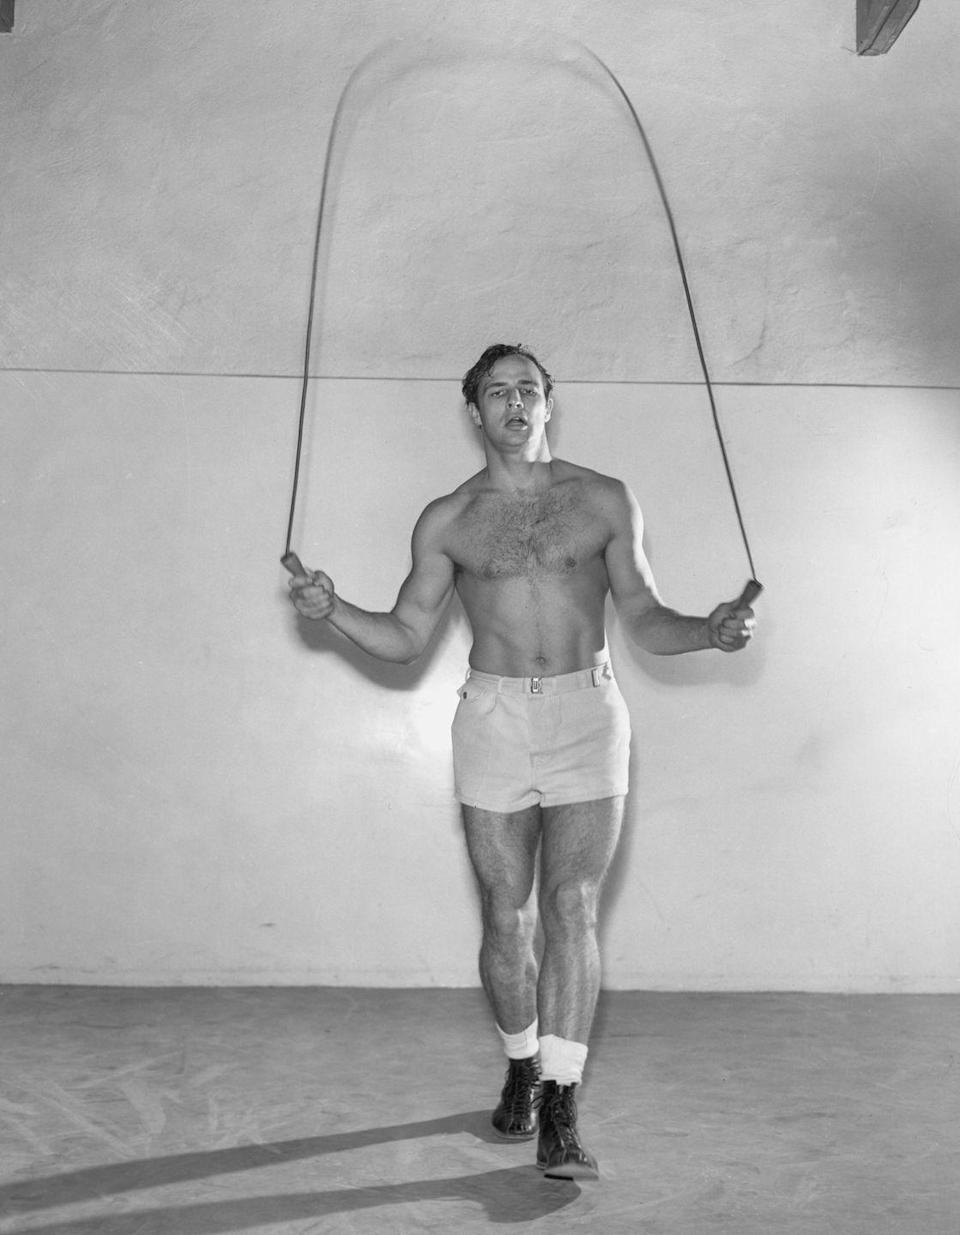 <p>Marlon Brando shows of his coordination while skipping rope at the gym, circa 1955. </p>